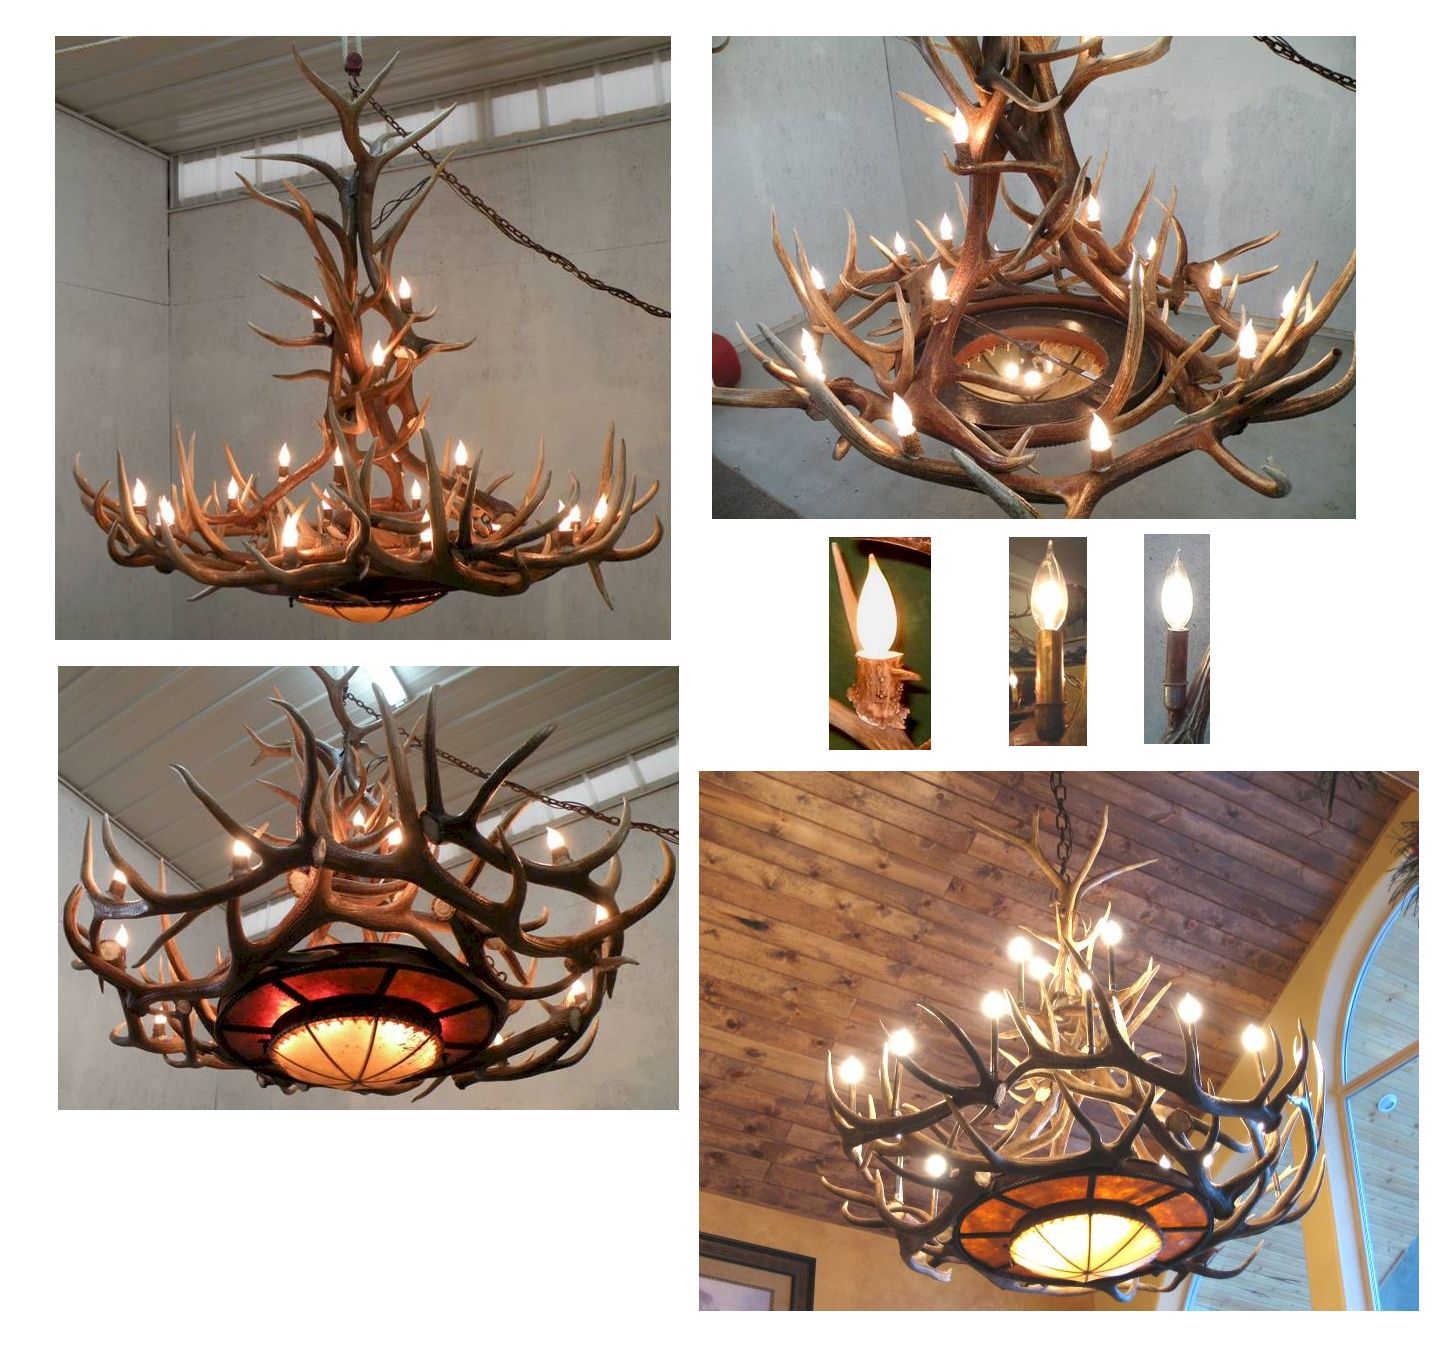 Antler chandeliers for sale real mccoy antler chandeliers for sale our antler chandeliers are made of real mule deer moose and elk antlers not the cheaply made cast resin versions you commonly aloadofball